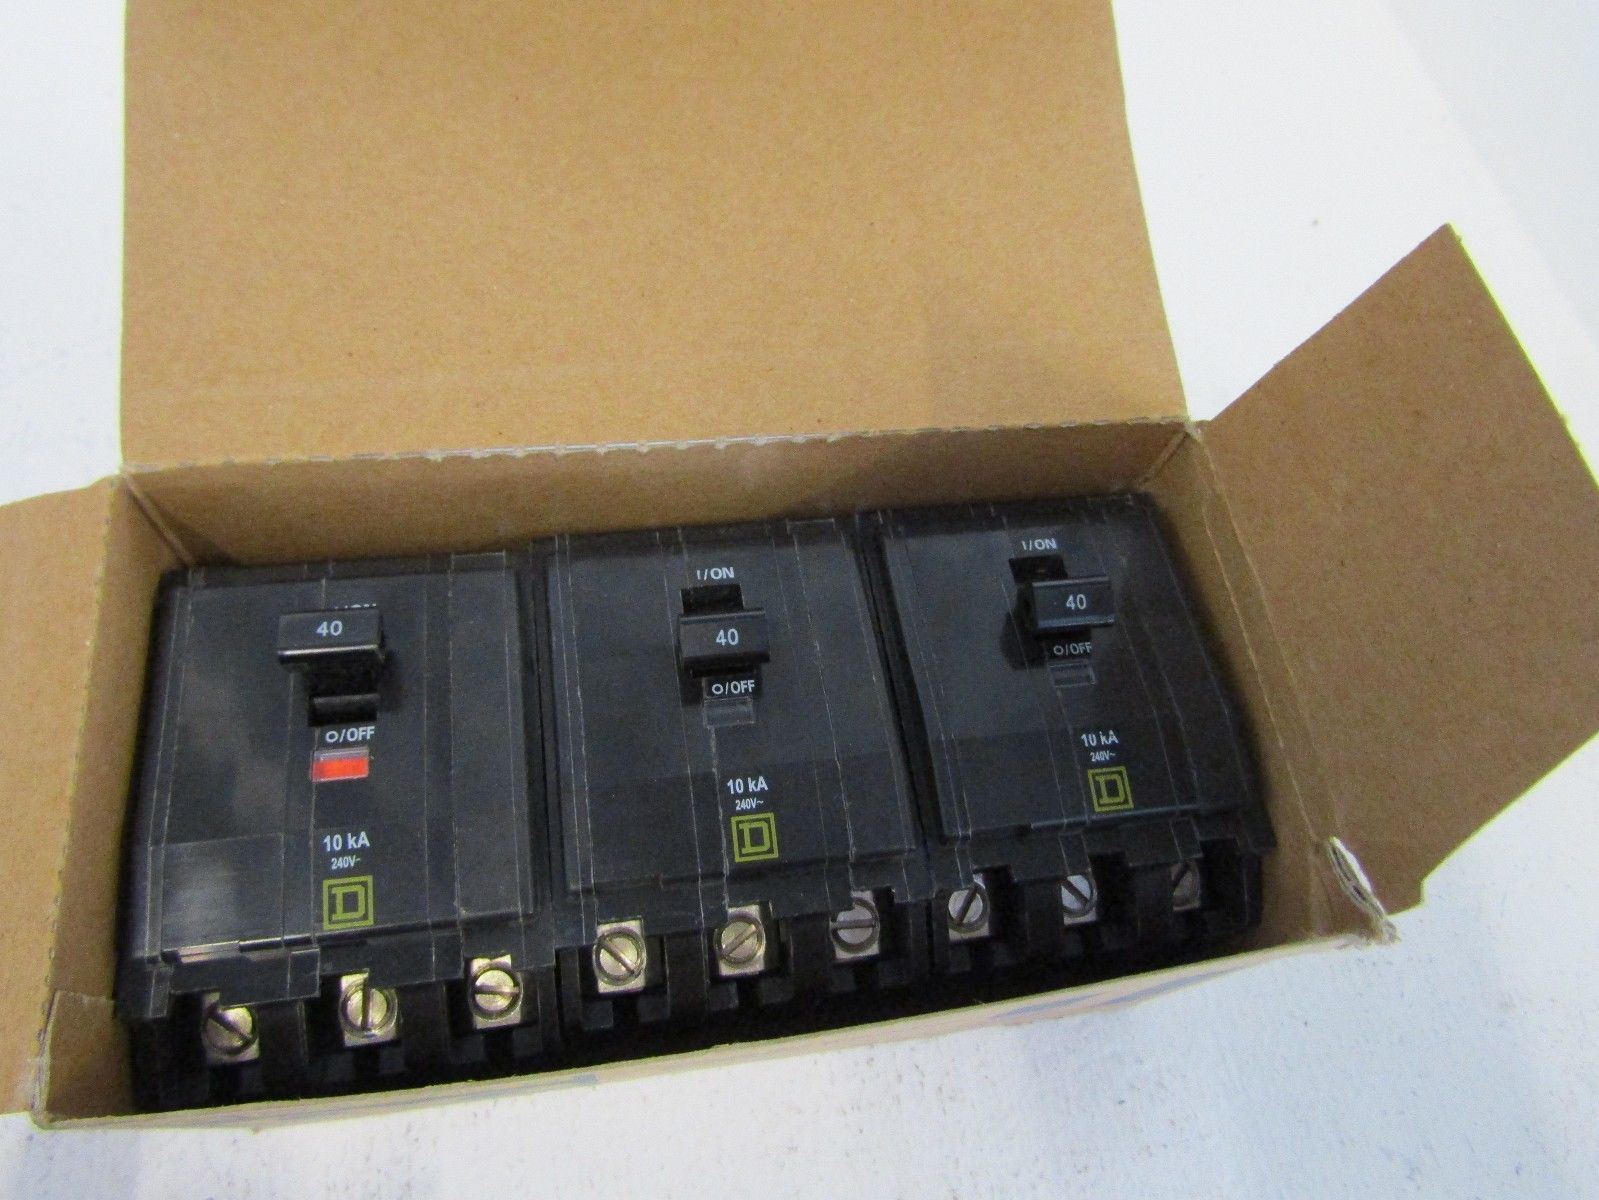 Square D Nq Circuit Breakers Wiring And Diagram Hub 15a 1p Qo Breaker Rona New Lot Of 3 Qo340 Pole 40 Amp Nf